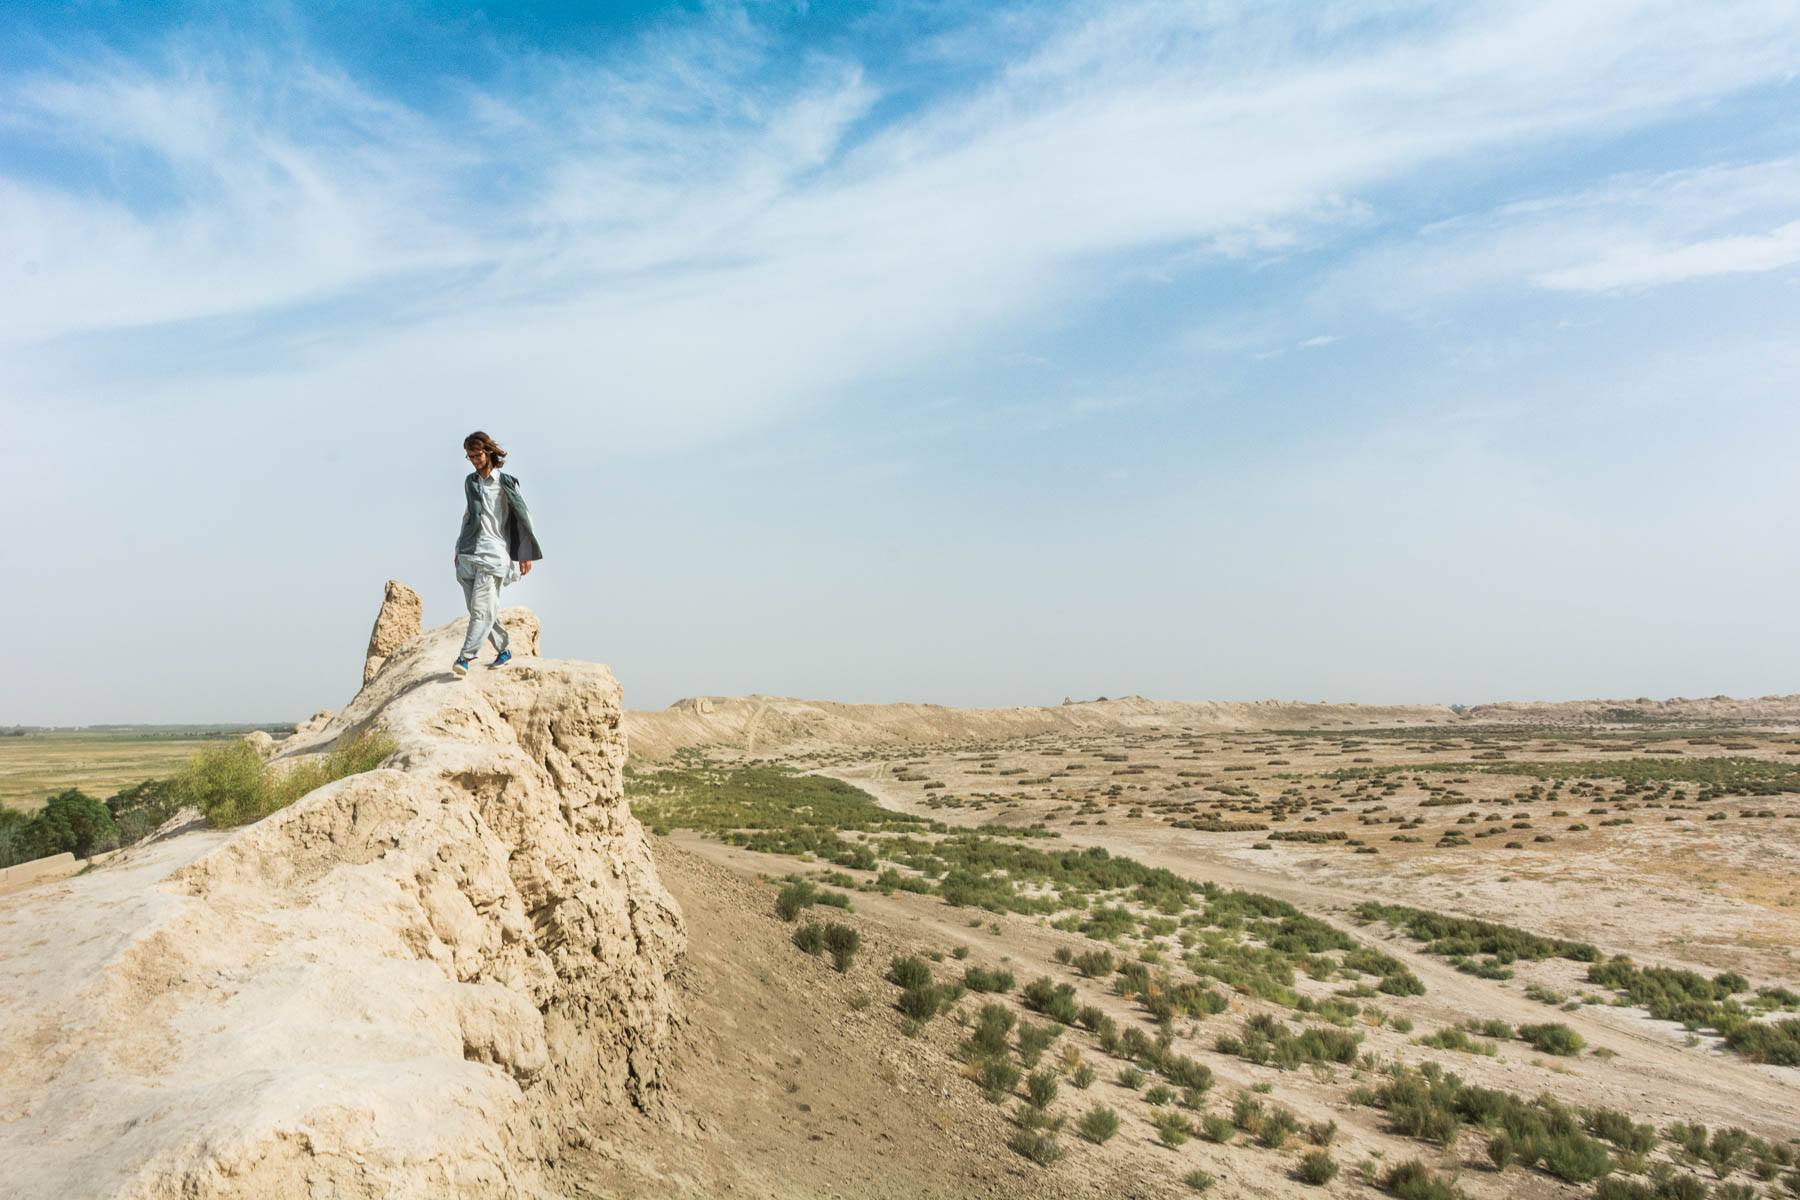 Wandering the great walls of Old Balkh, Afghanistan - Lost With Purpose